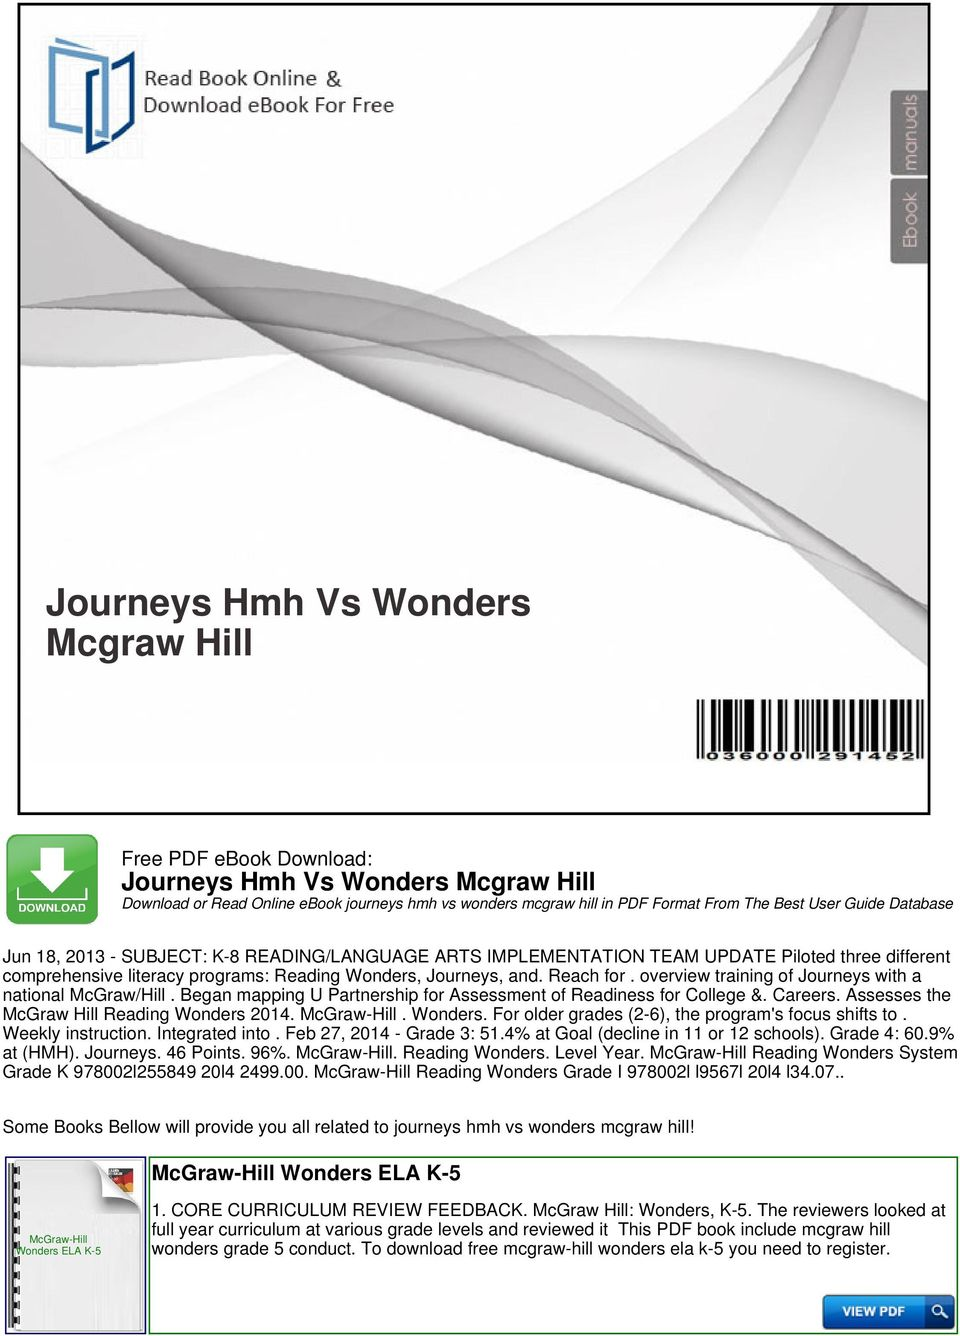 Journeys hmh vs wonders mcgraw hill pdf overview training of journeys with a national mcgrawhill began mapping u partnership for fandeluxe Choice Image